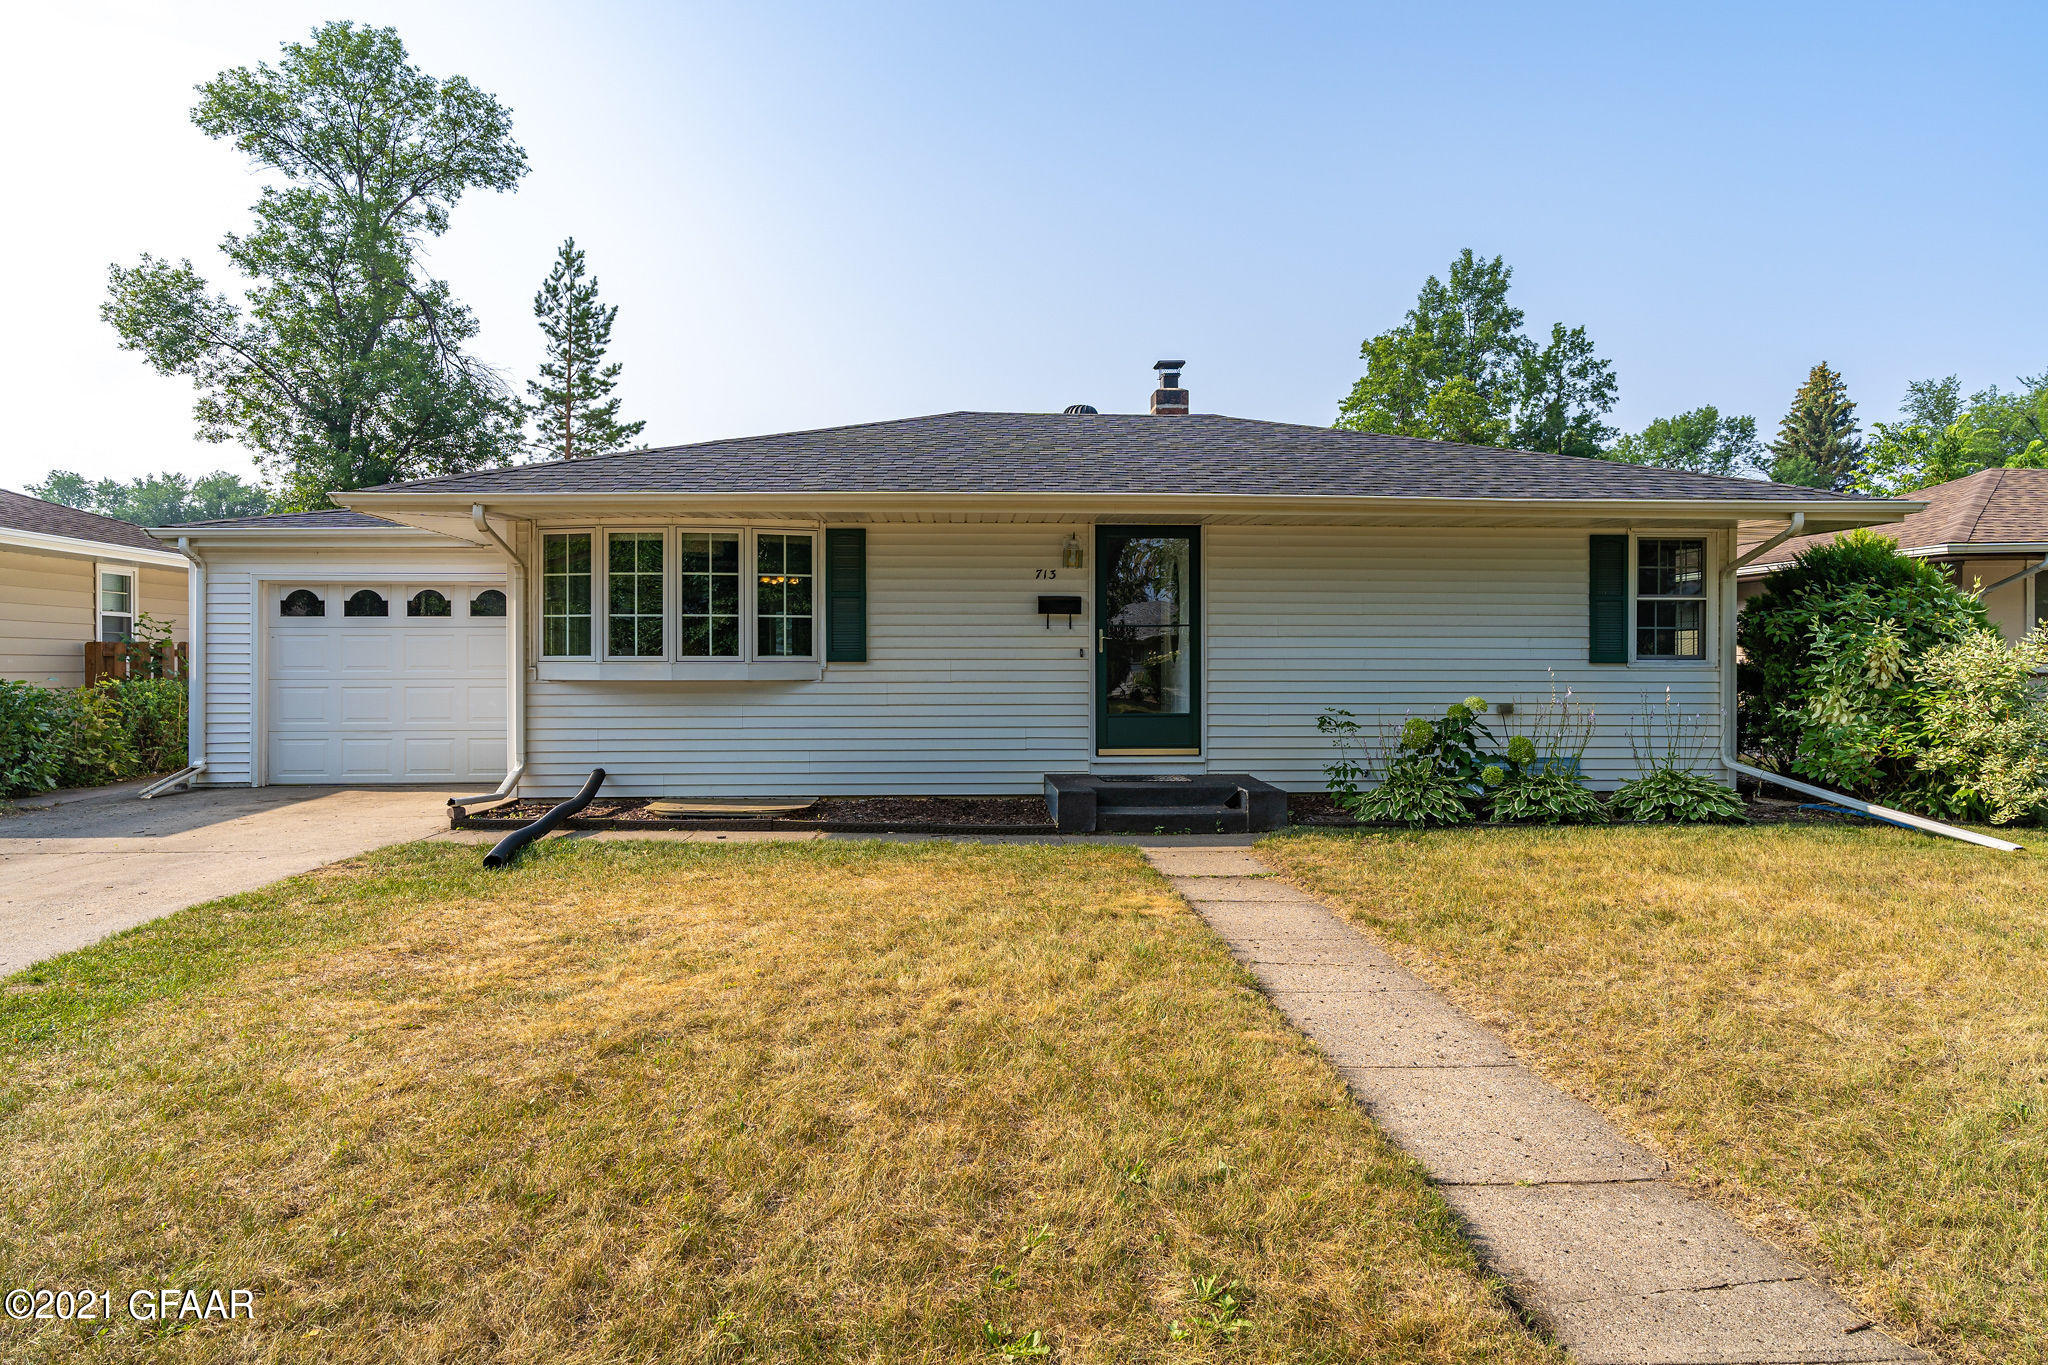 Great southend home in heart of Grand Forks! This updated home features 4 bds, hardwood floors, remodeled basement, and sunroom. The kitchen comes with stainless steel appliances, window into sunroom and room for a table. During the summer months entertain on your large patio in your large fenced in backyard with alley access. Radon mitigation system. Tons of natural light and storage.